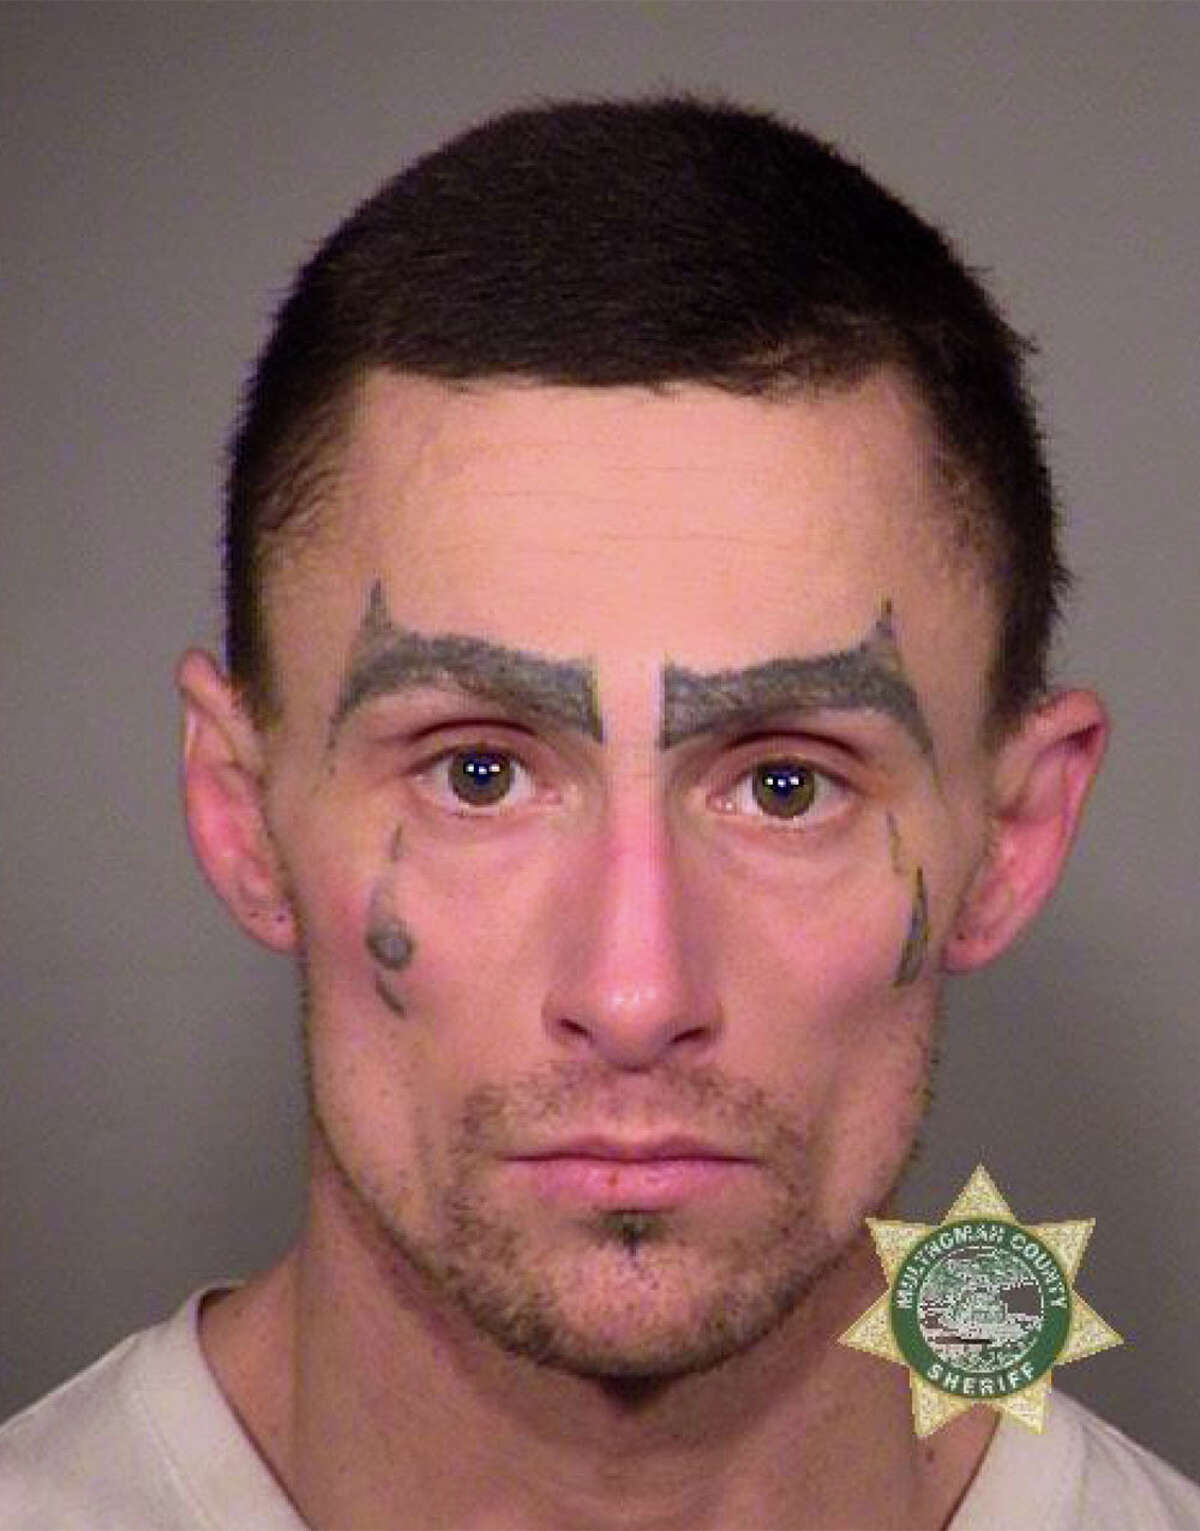 An Oregon man with more than a dozen mugshots to his name shows the detrimental effects of meth use spanning his 14 years of crime. The mugshot series was released in the beginning of February. Read more.